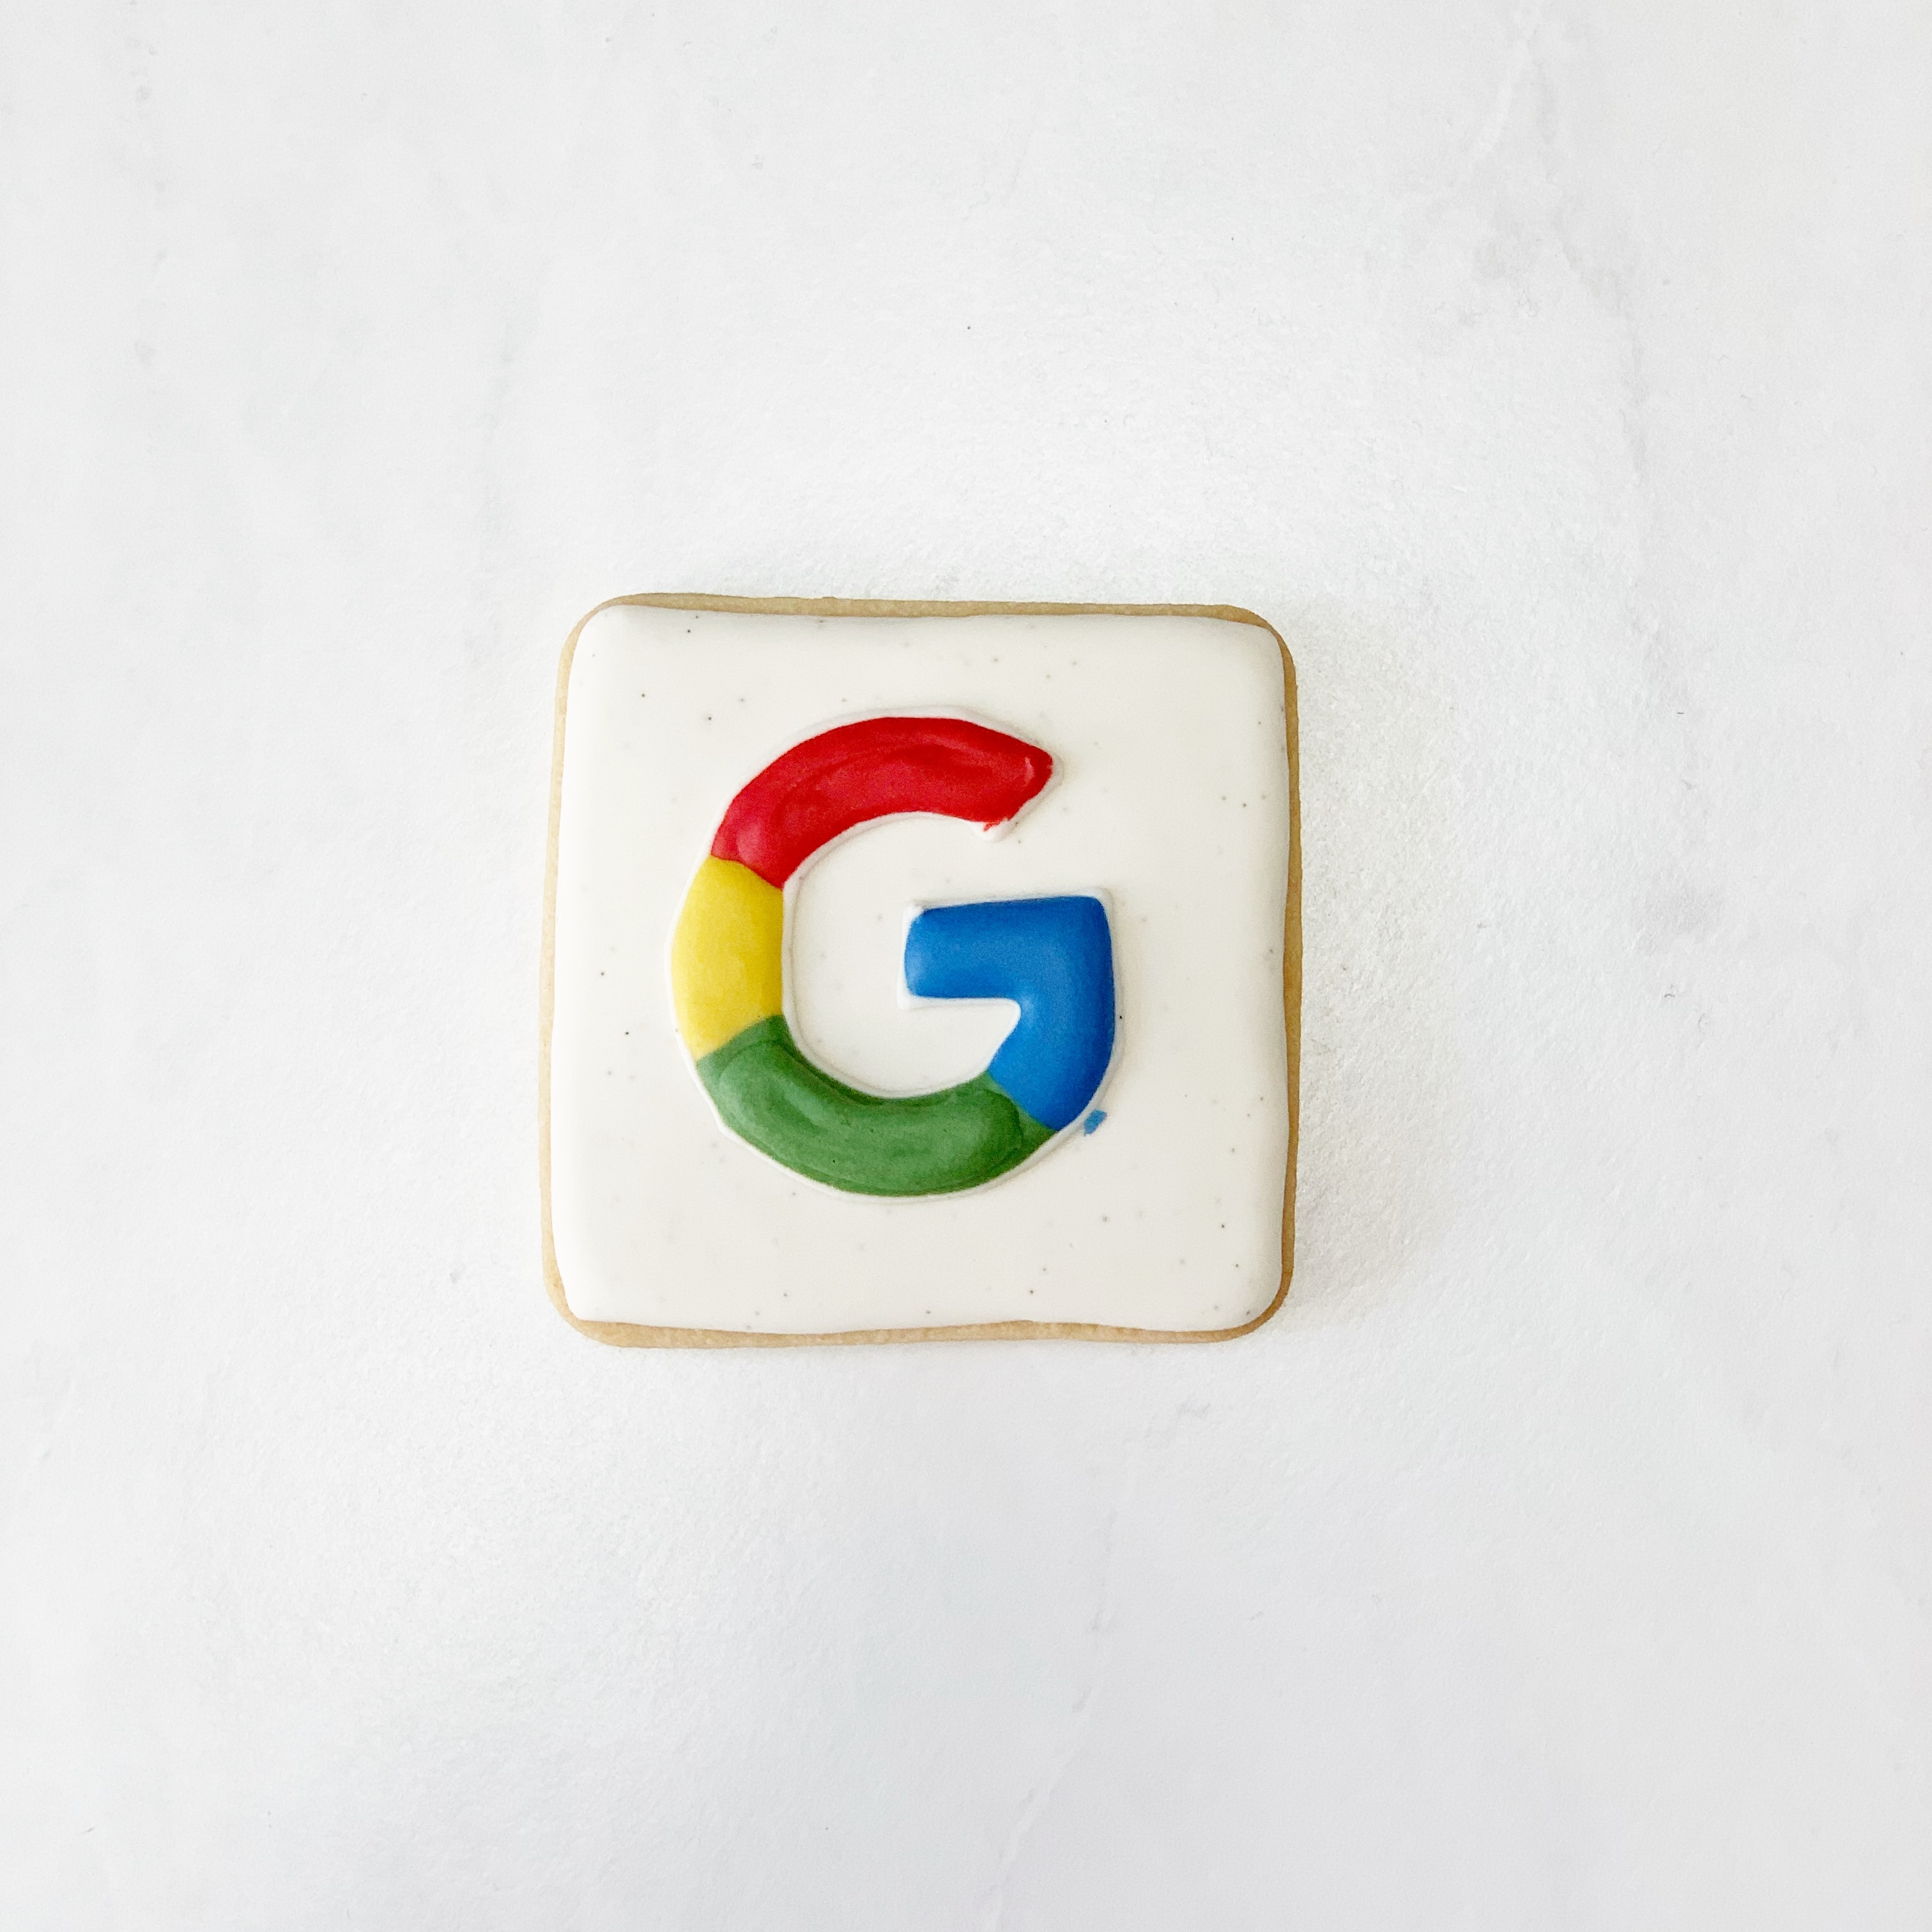 The Google logo on a square, white cookie.